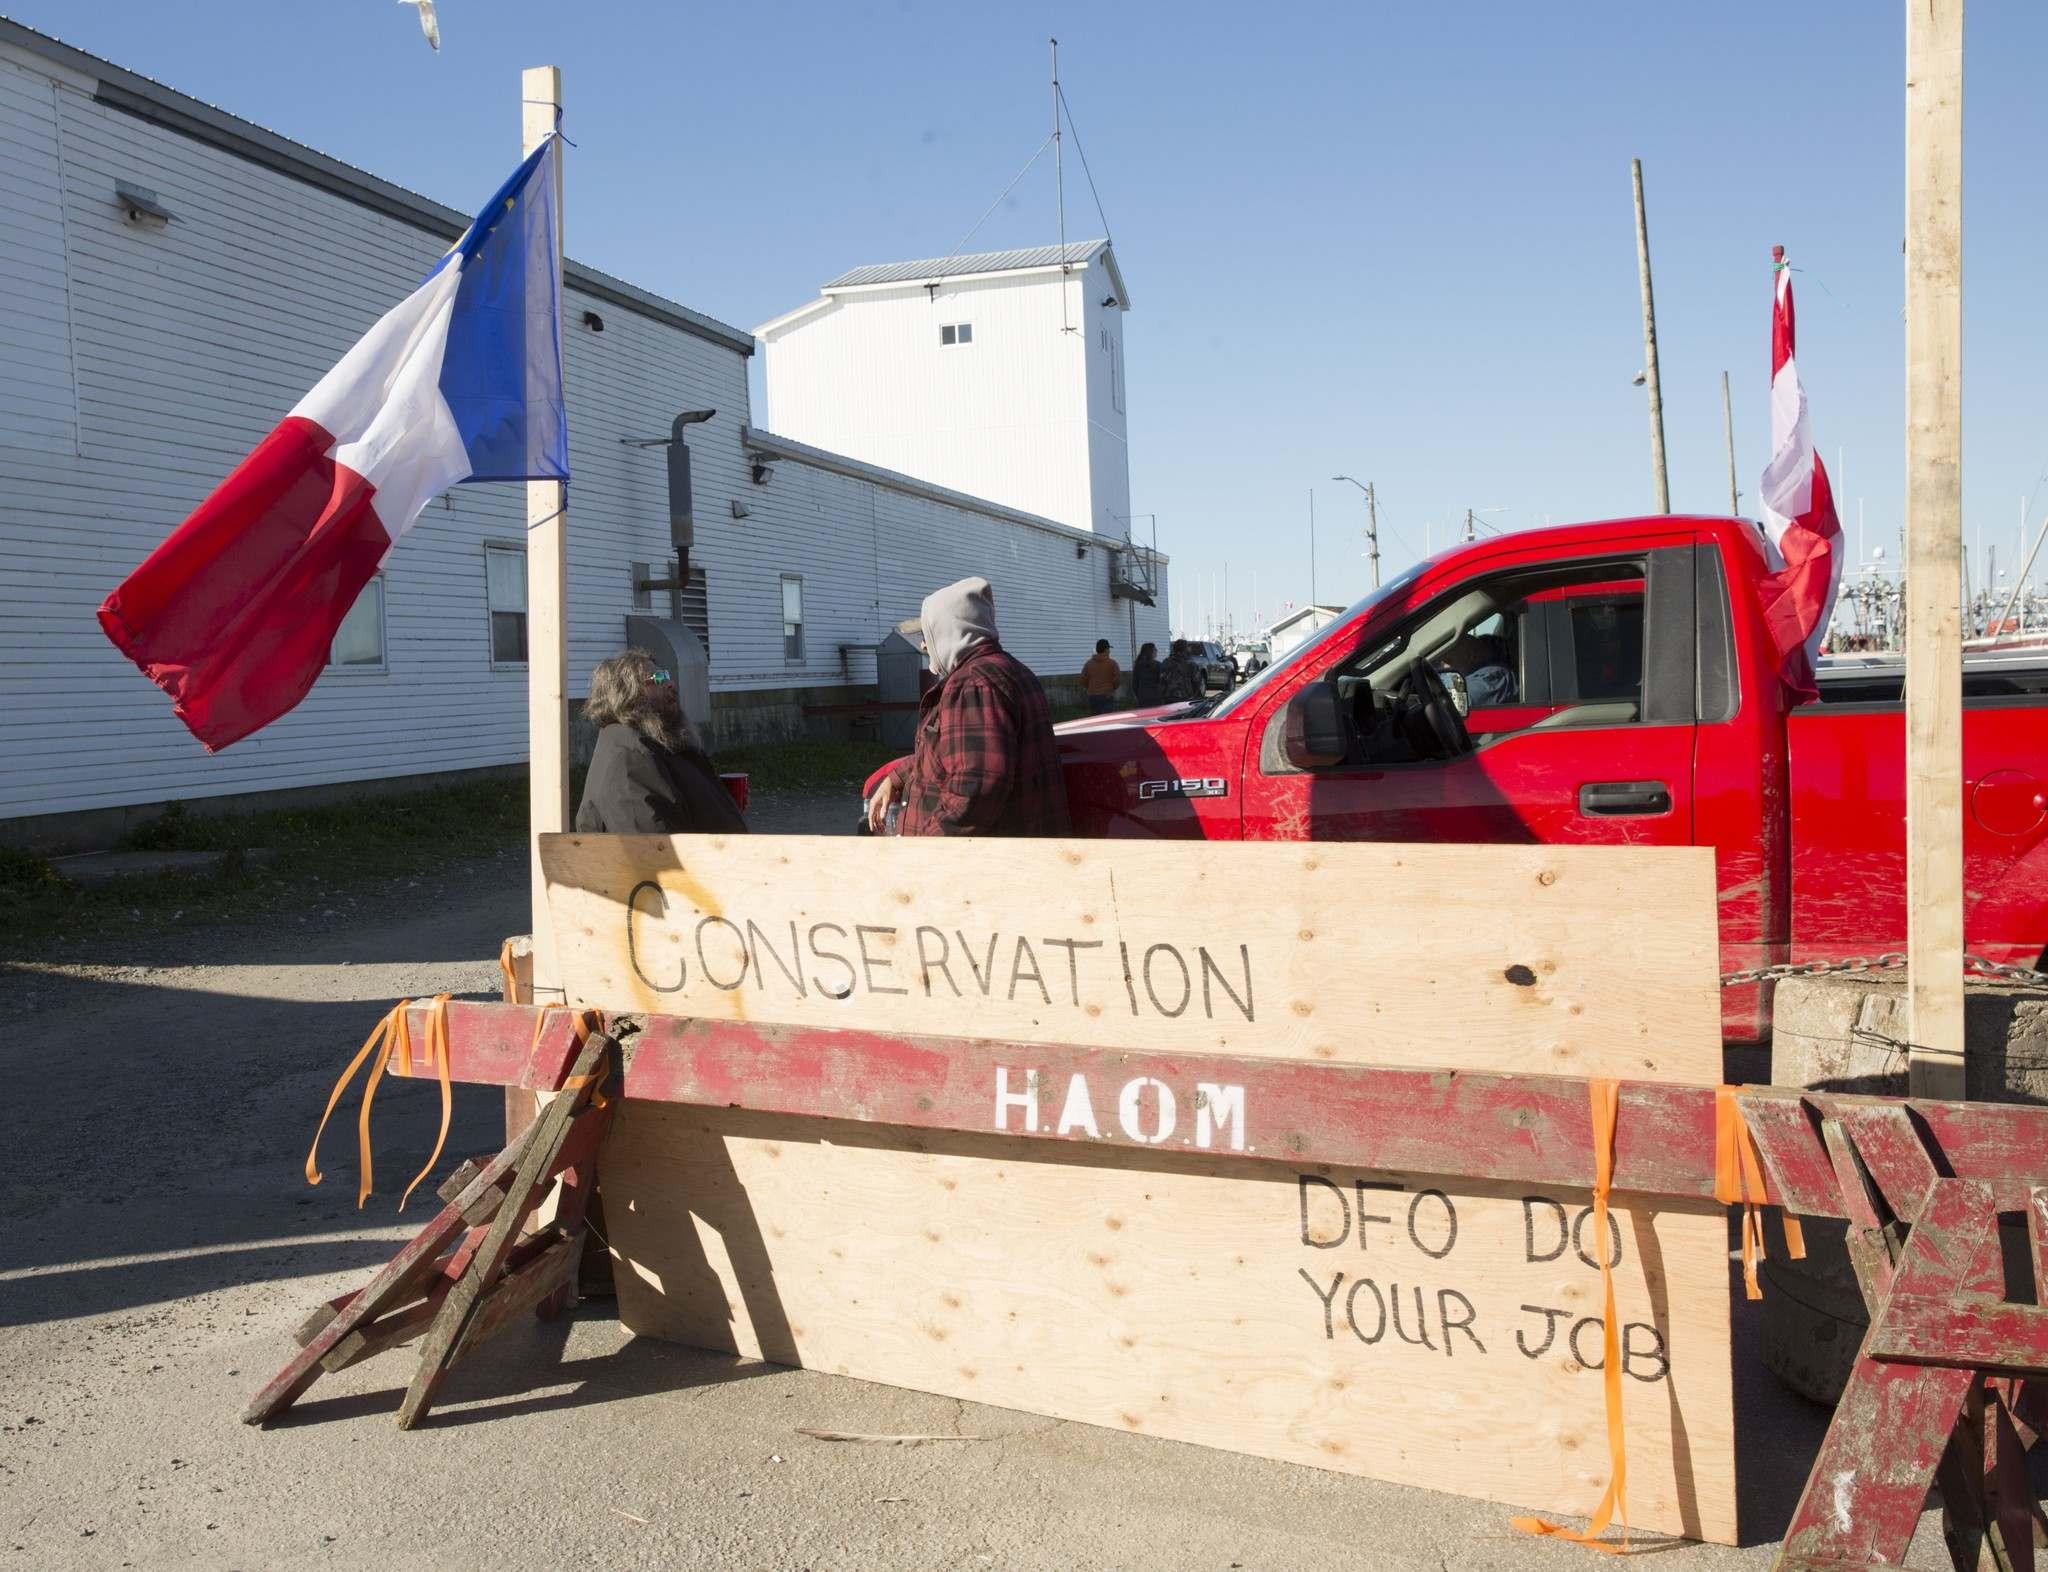 Fishers stand at a barricade in Meteghan, N.S., on Sunday. A spokesman said about 100 boats were removing Indigenous lobster traps and fishers were intending to take them to the wharf in Meteghan later in the day.</p></p>